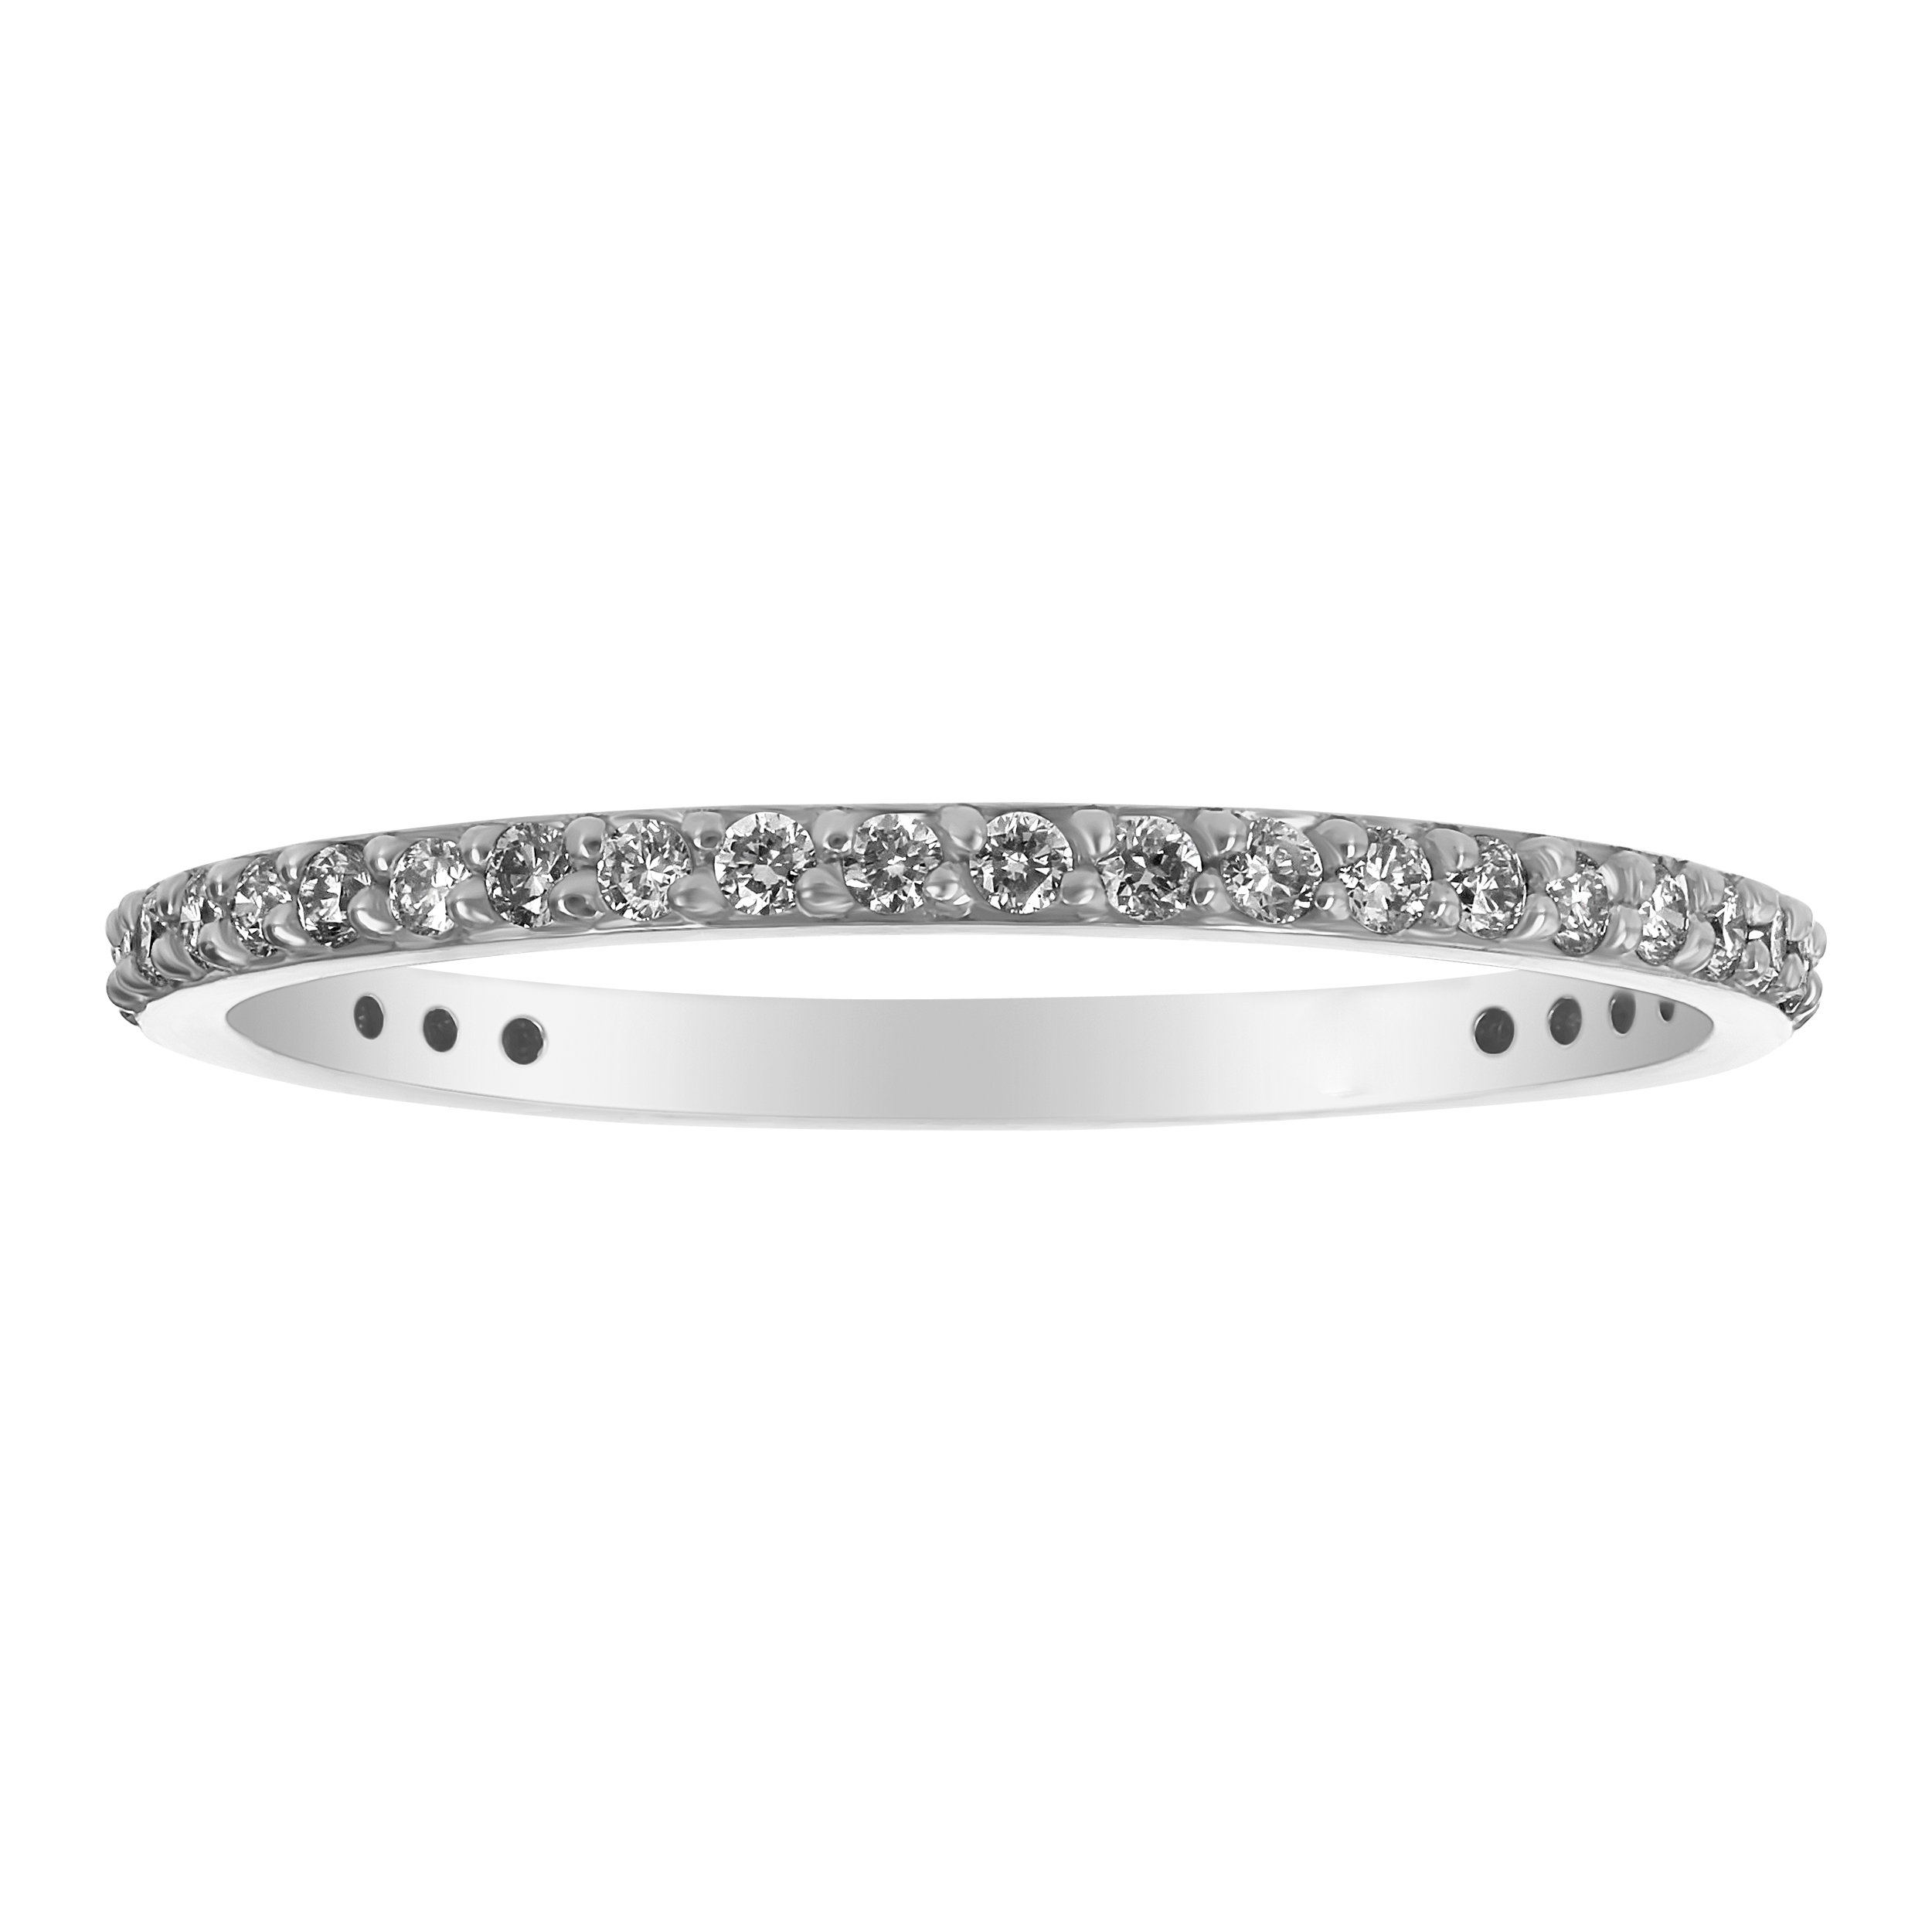 Olivia Paris 14k White Gold Diamond Eternity Wedding Band Ring for Women (1/3 cttw, H-I, SI1-SI2) Size 6